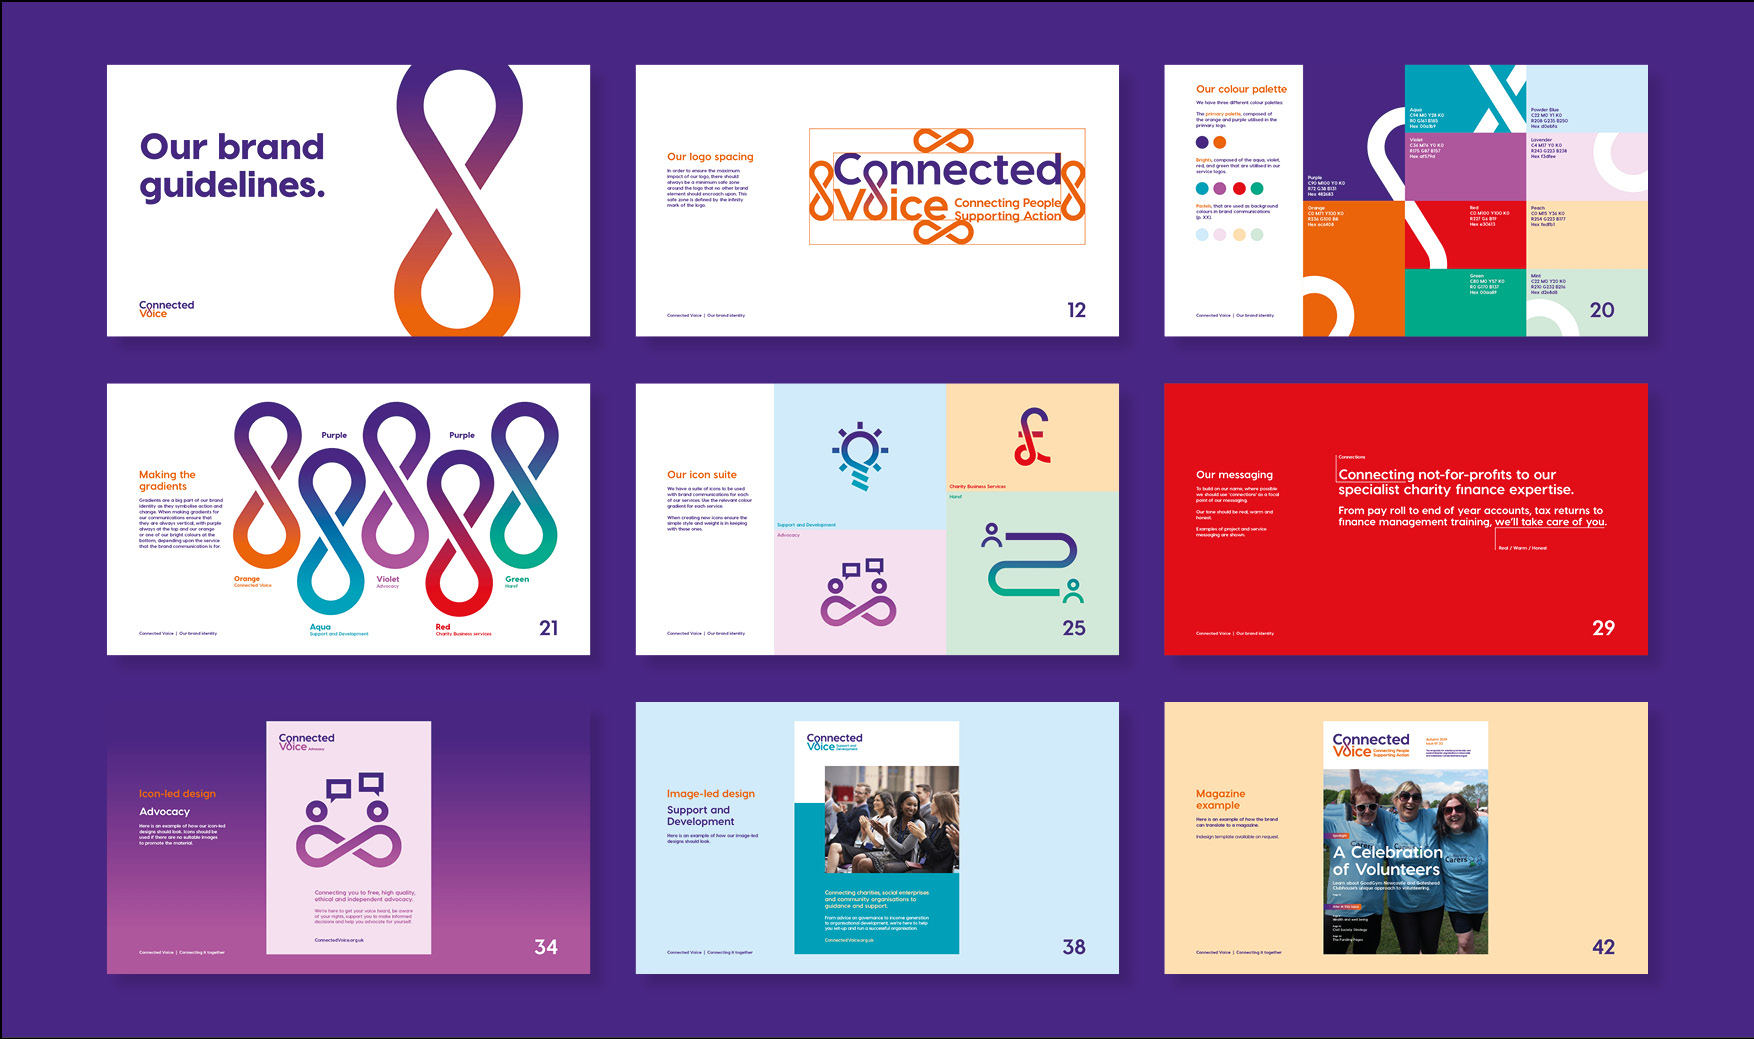 Connected Voice Newcastle charity brand guidelines for regional cvs by Altogether creative.